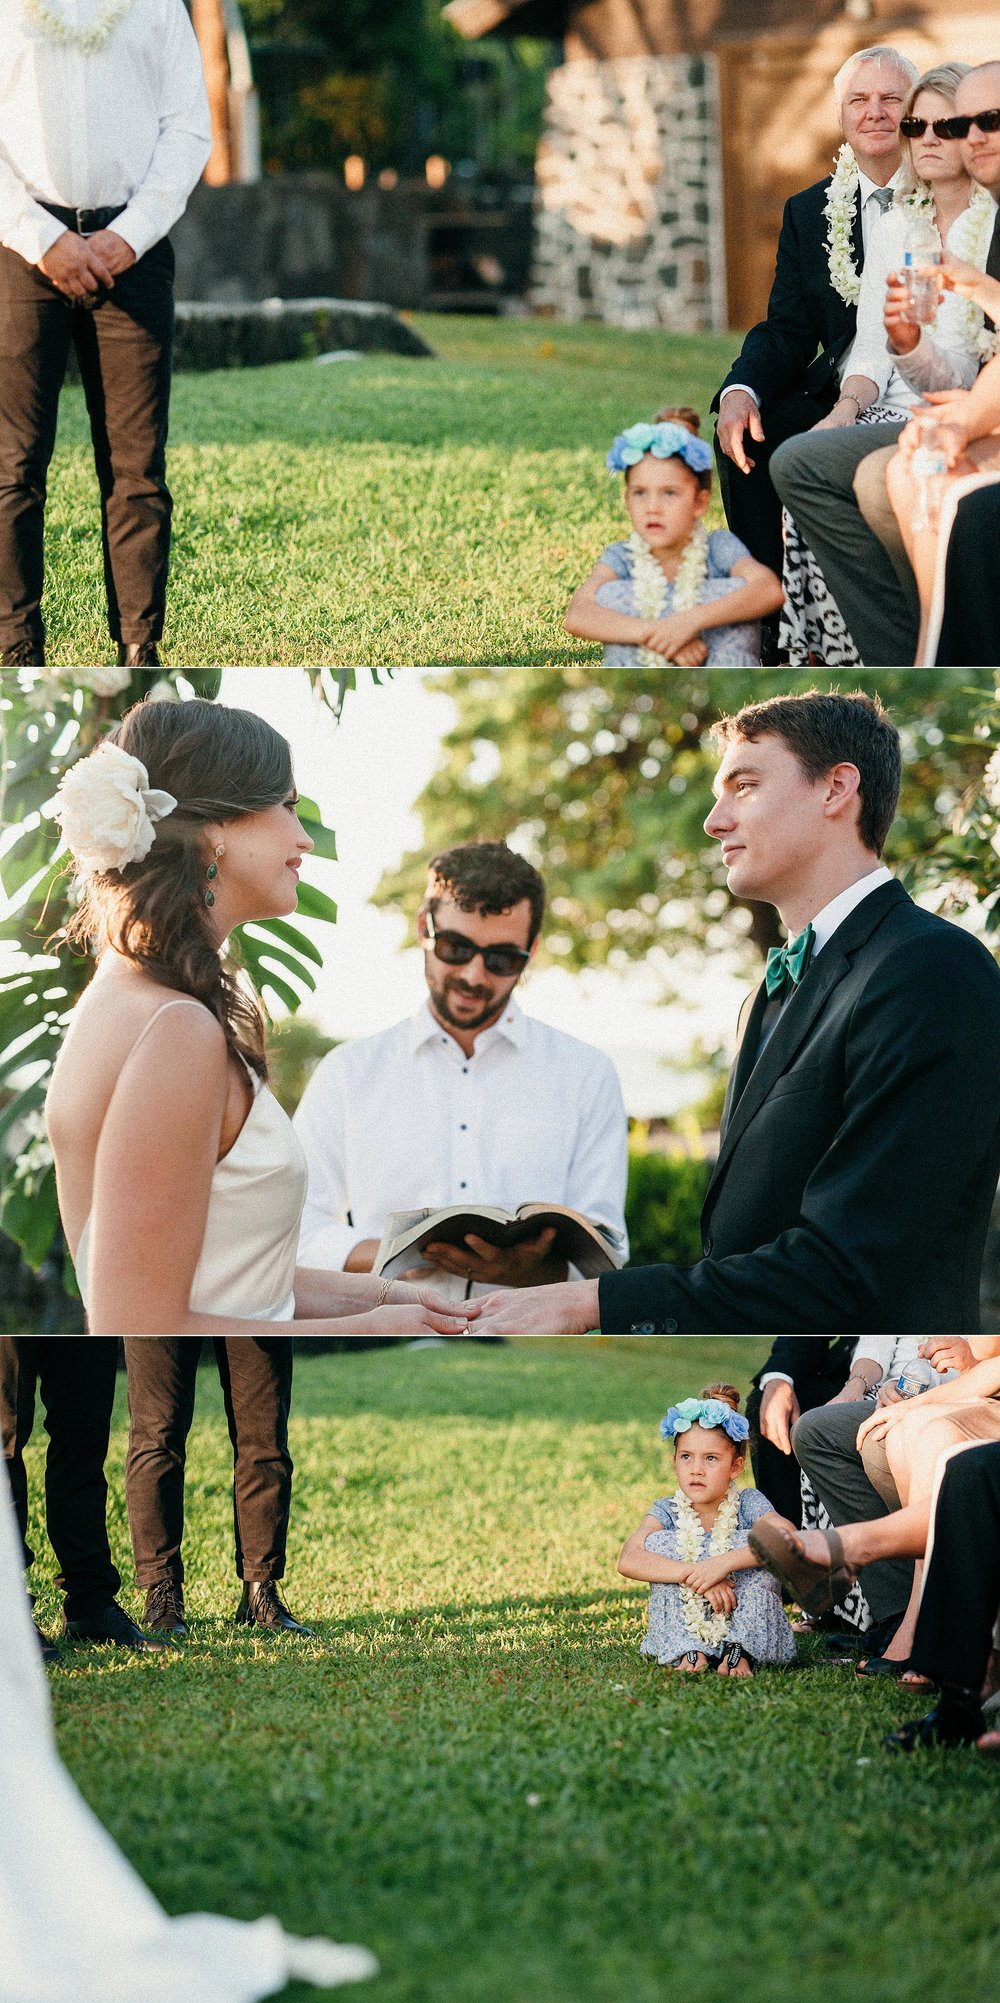 Kona-Big-Island-Hawaii-New-Years-Eve-Wedding-with-Ceremony-at-Living-Stones-Church-and-Reception-at-Daylight-Mind-Coffee_0016.jpg